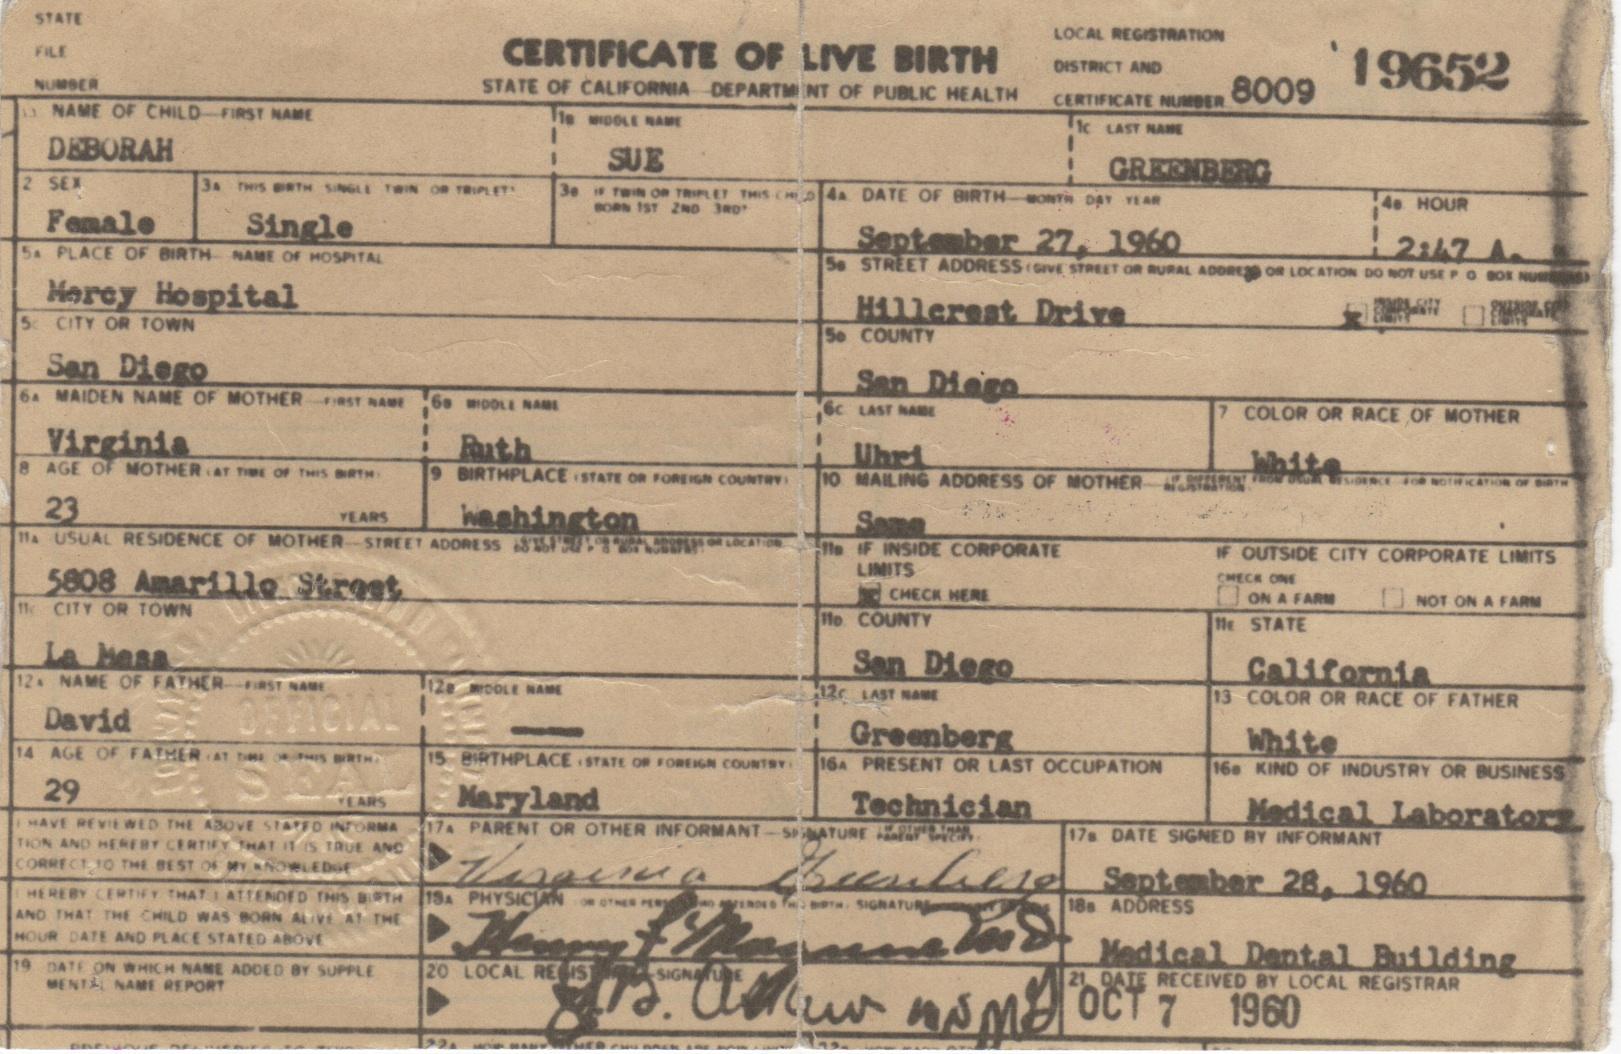 Birth certificate california department of health image debi birth certificate debi derryberry comments yadclub image collections aiddatafo Choice Image